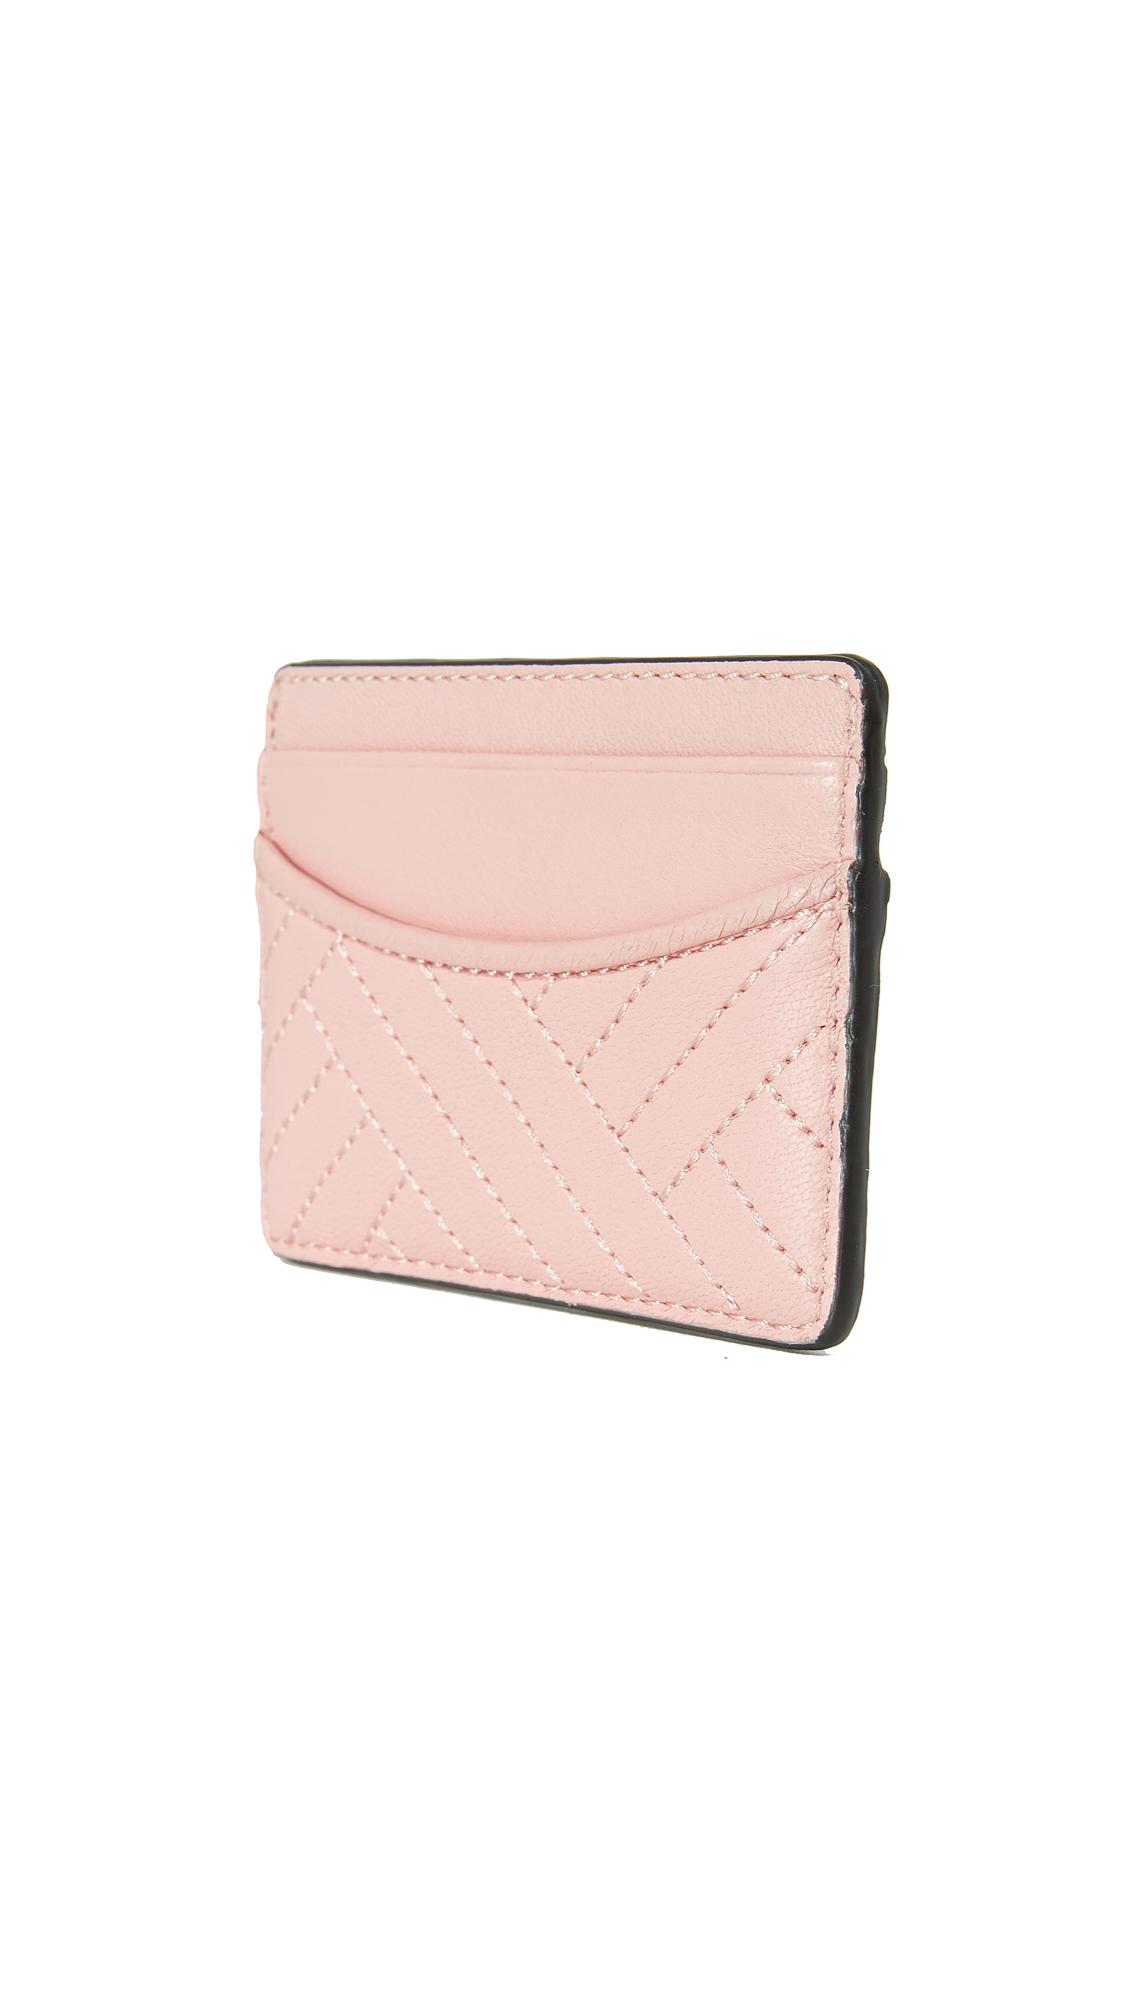 42983fe24980 Lyst - Tory Burch Alexa Slim Card Case in Pink